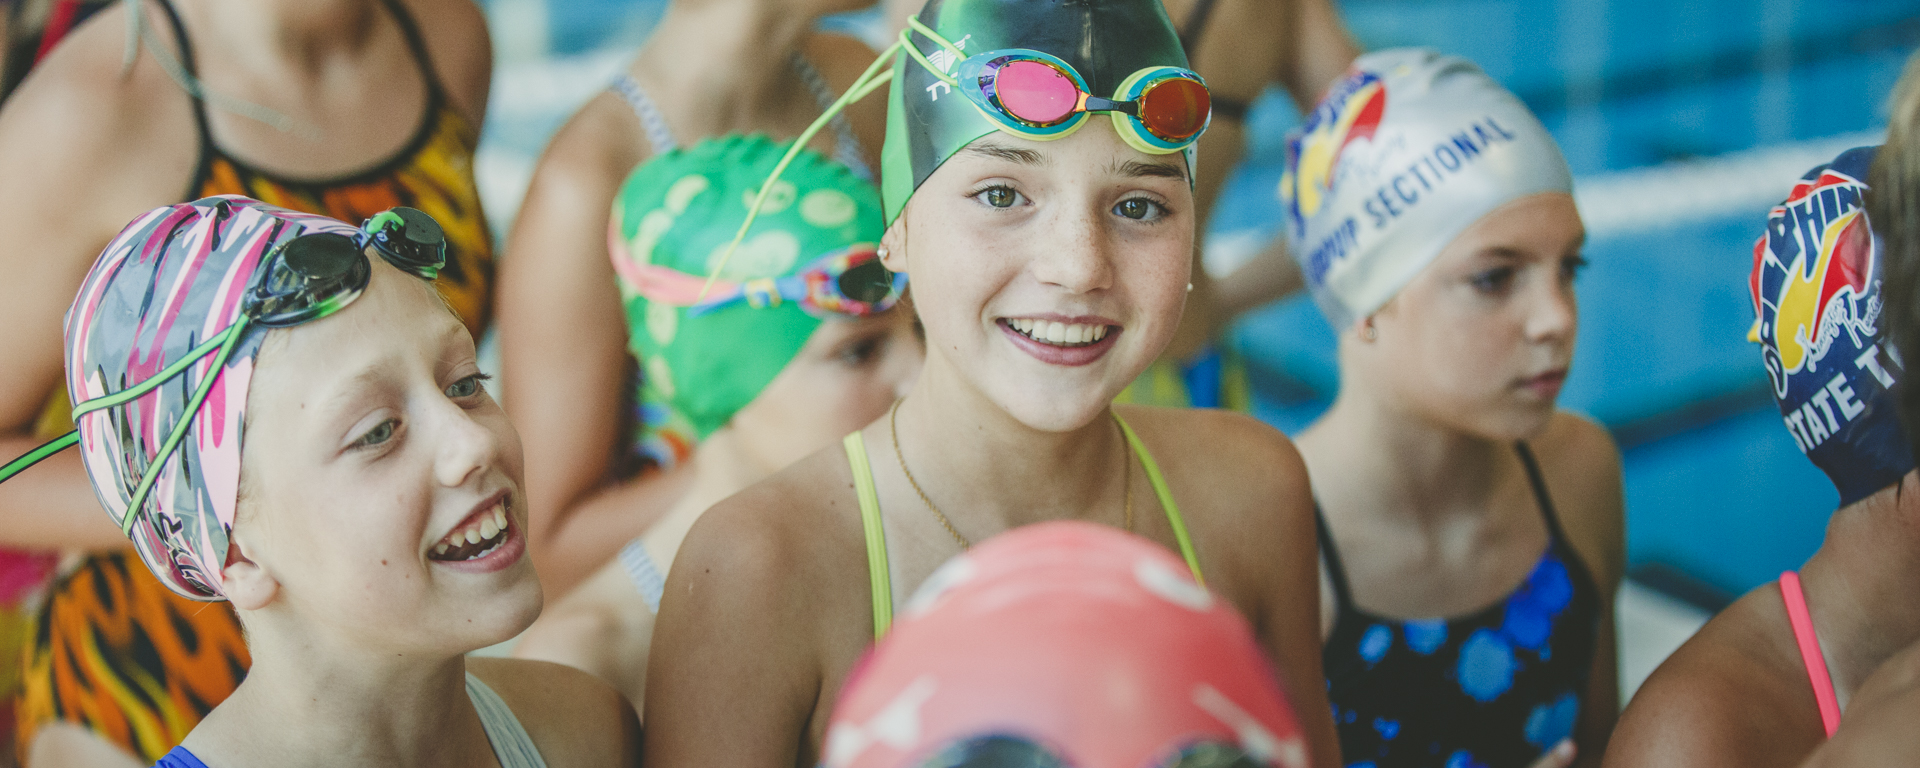 swimmers smiling